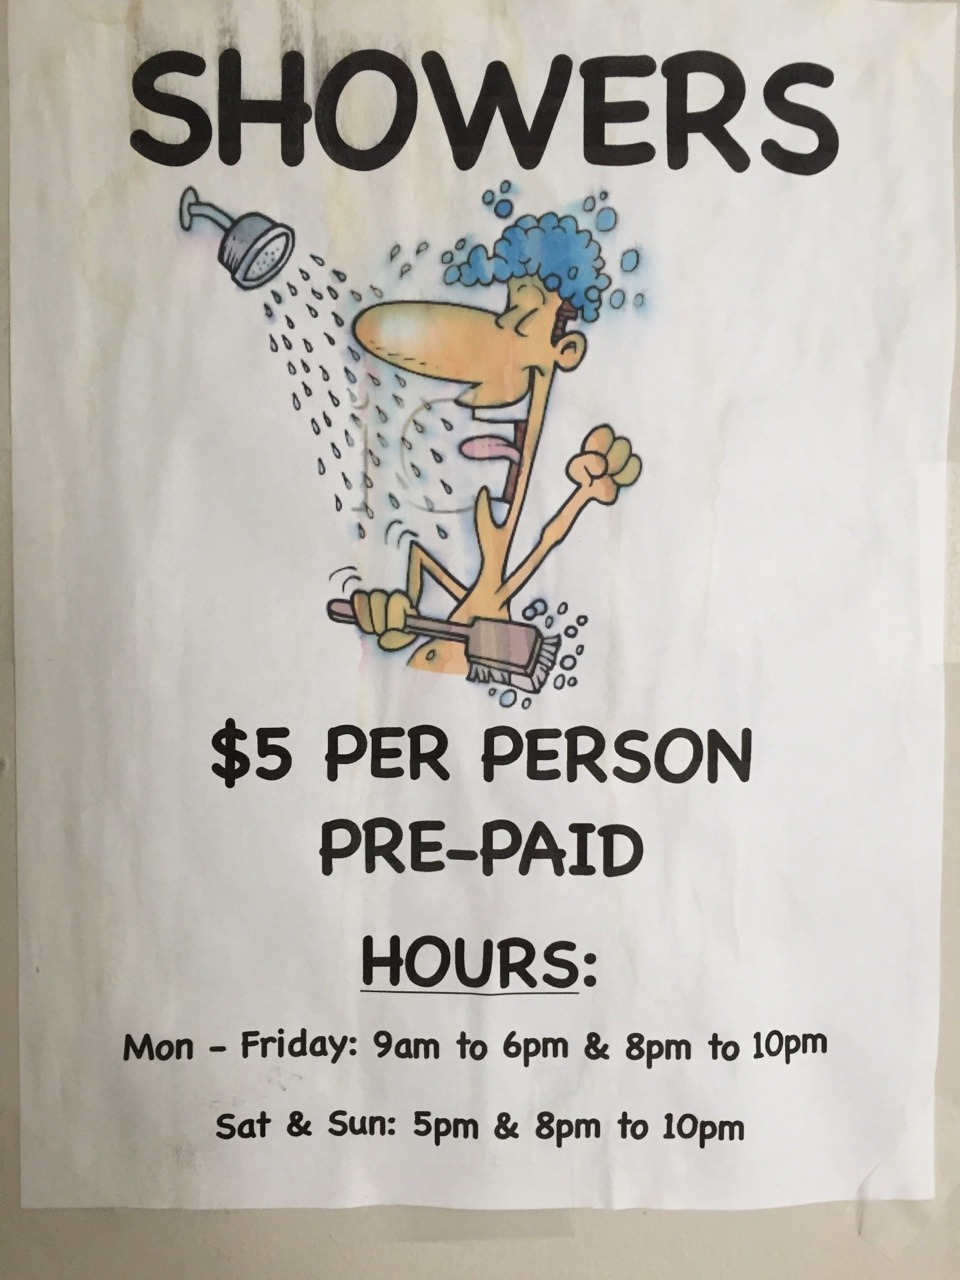 When you are as dirty as we were, you almost DO dance and sing to pay five bucks for a shower.